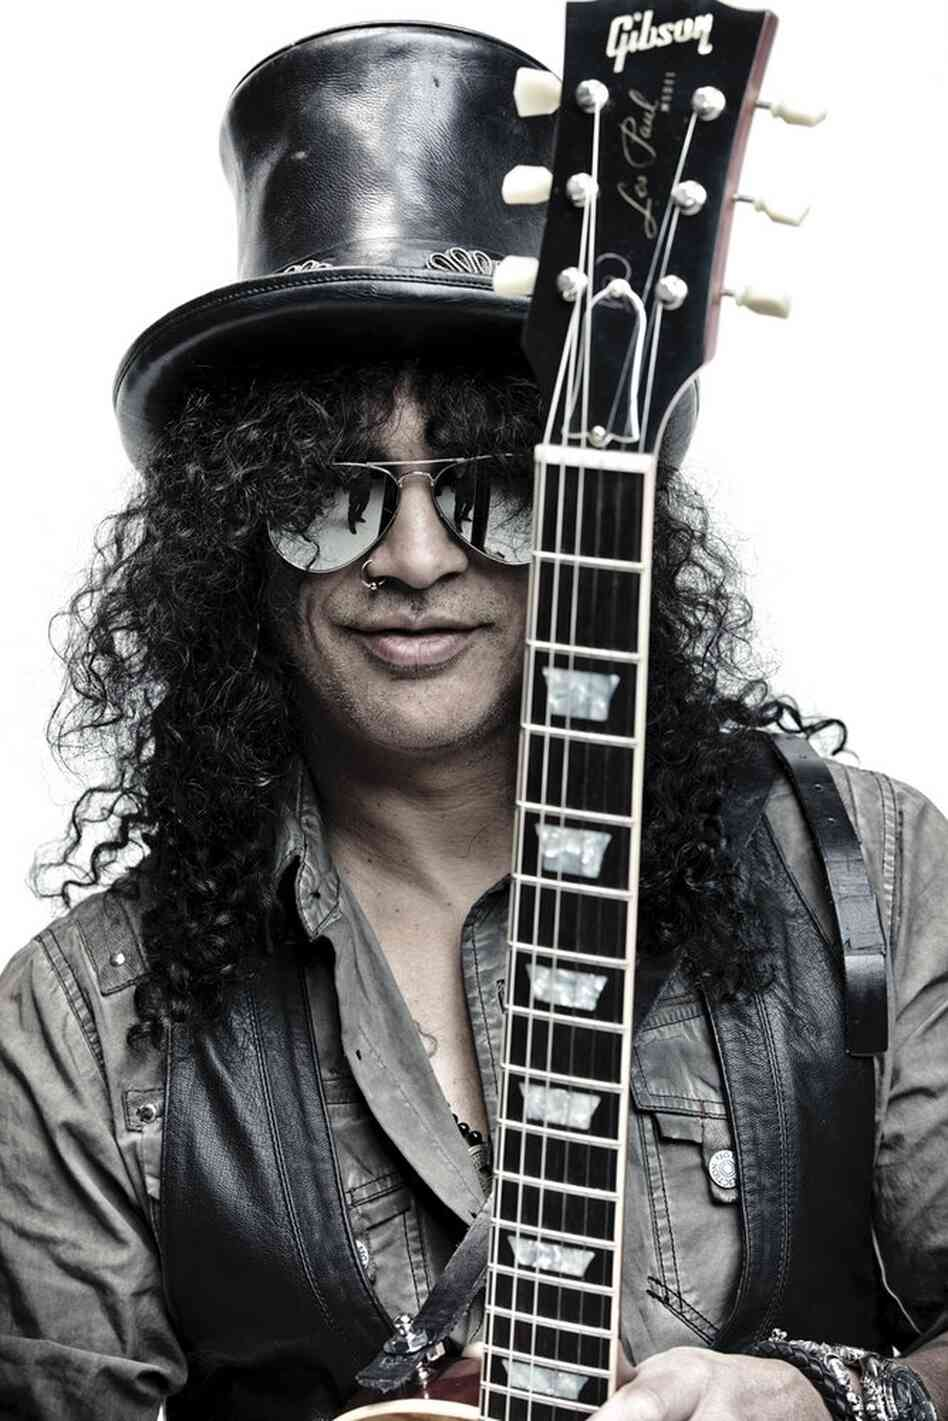 Slash, the former lead guitarist for Guns N' Roses, has a new album out.